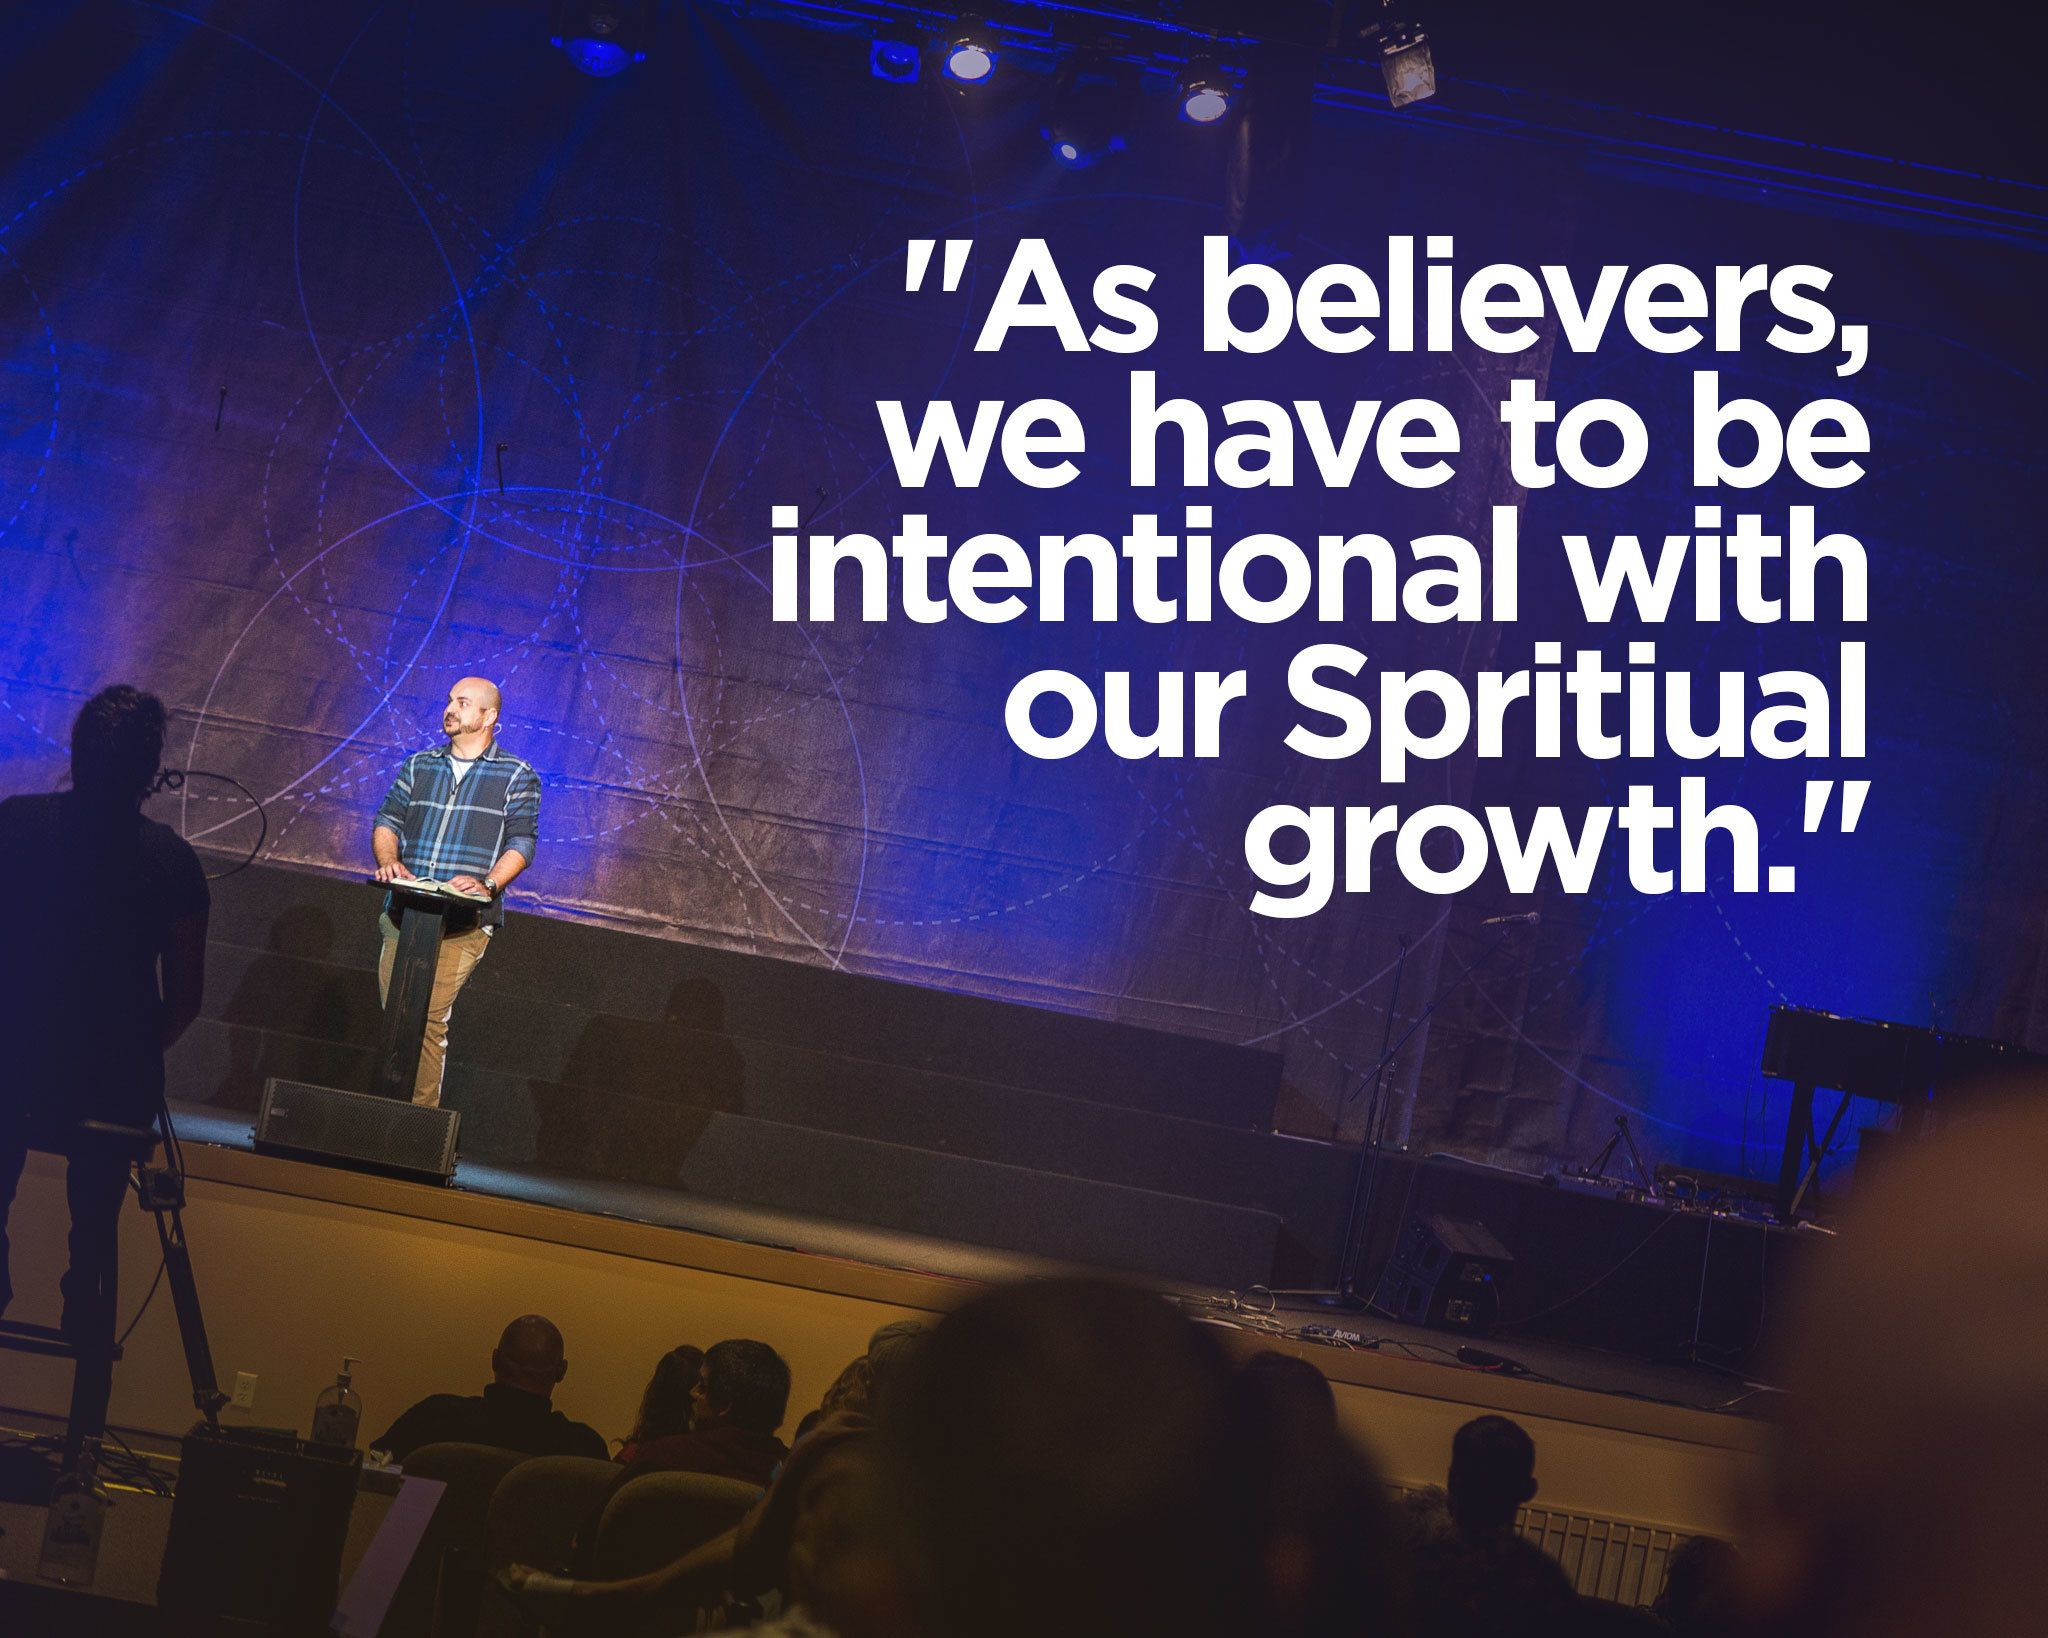 spiritual growth is  intentional  incremental